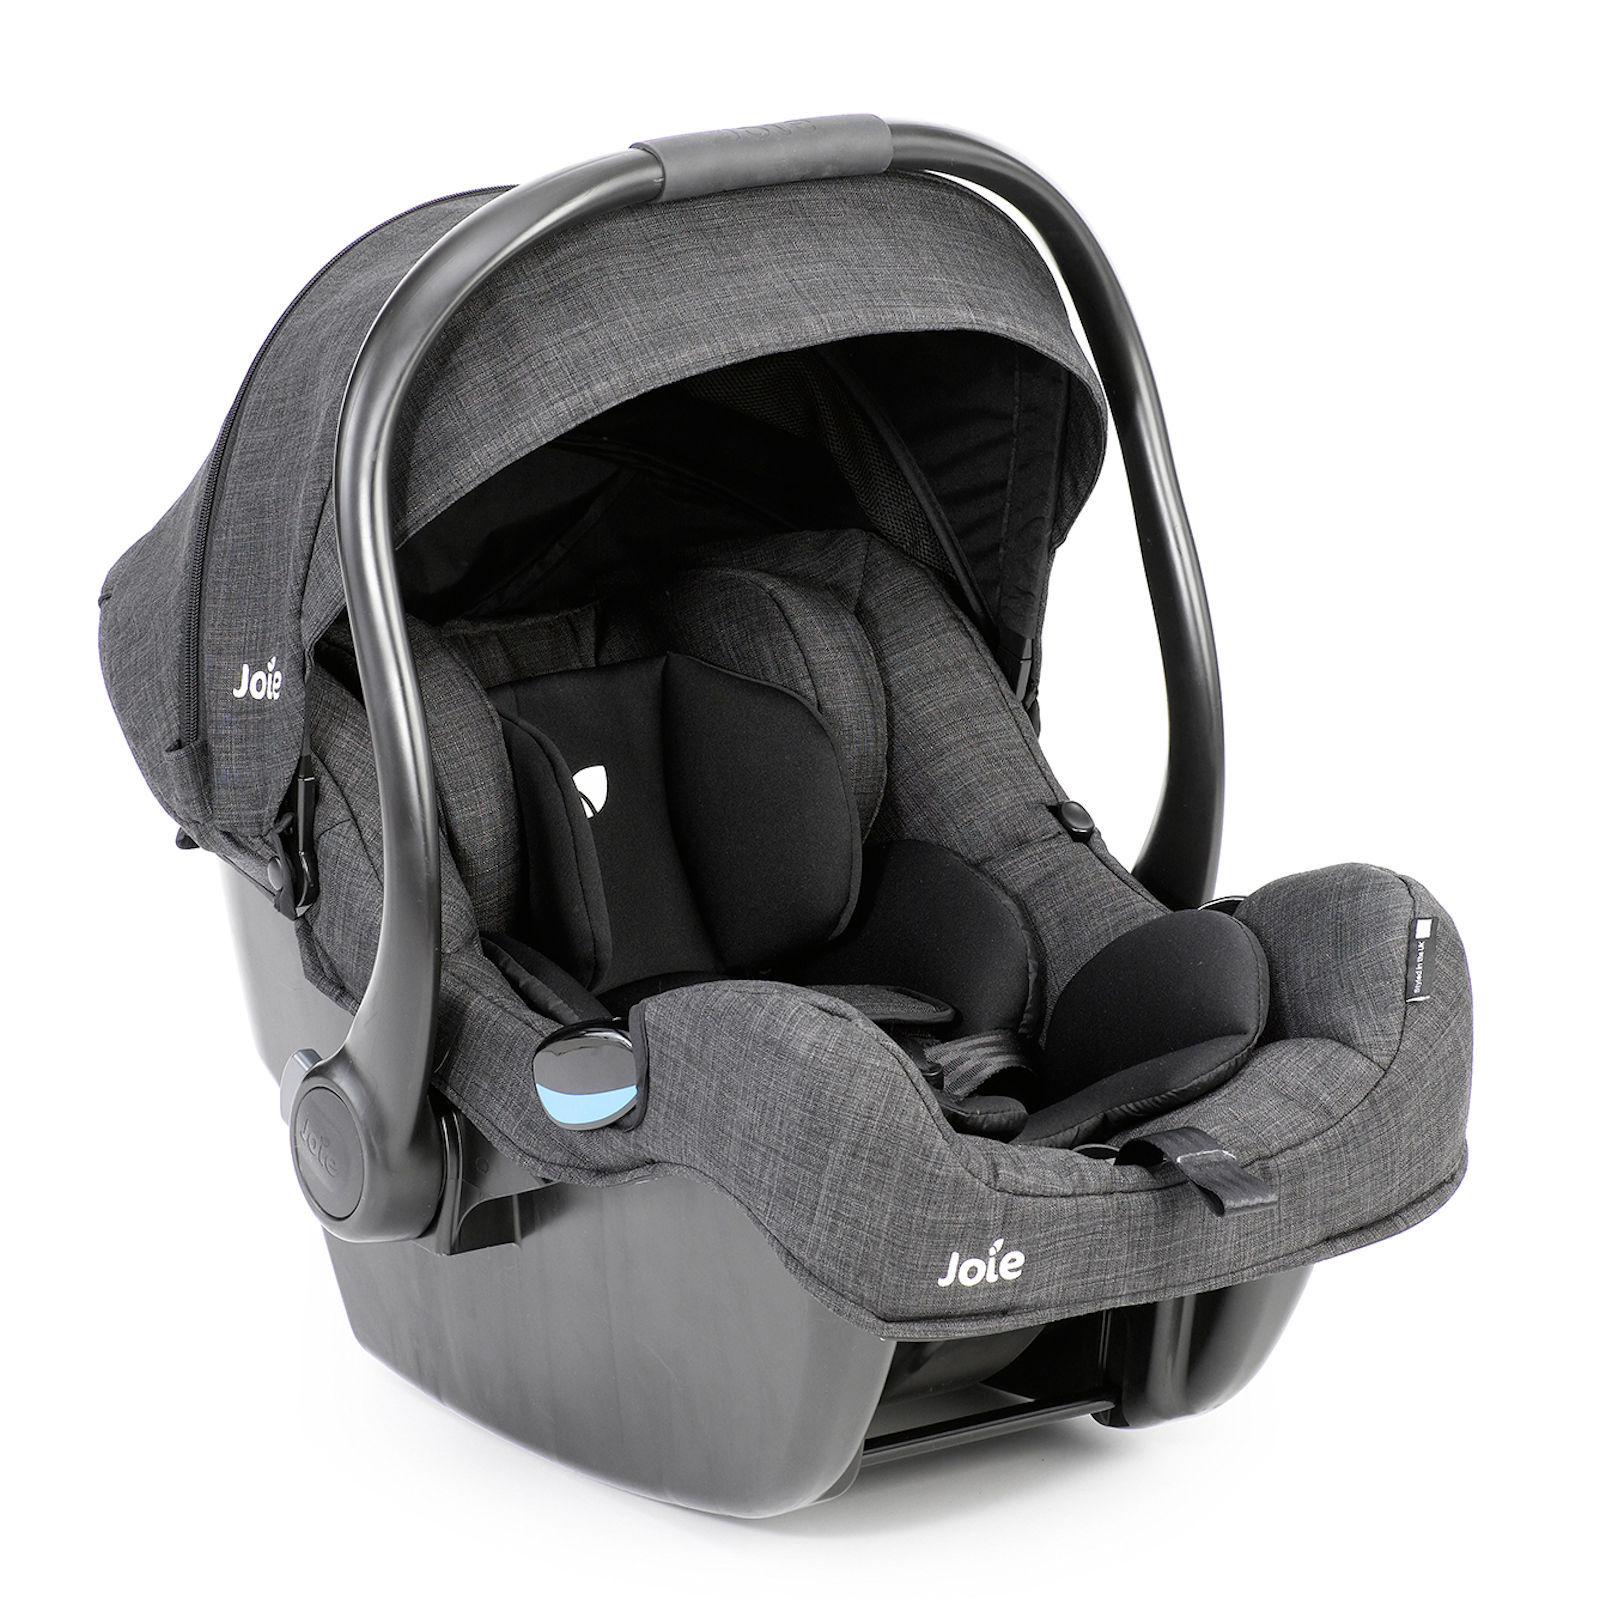 Joie Chrome Dlx I Gemm Travel System Carrycot Inc